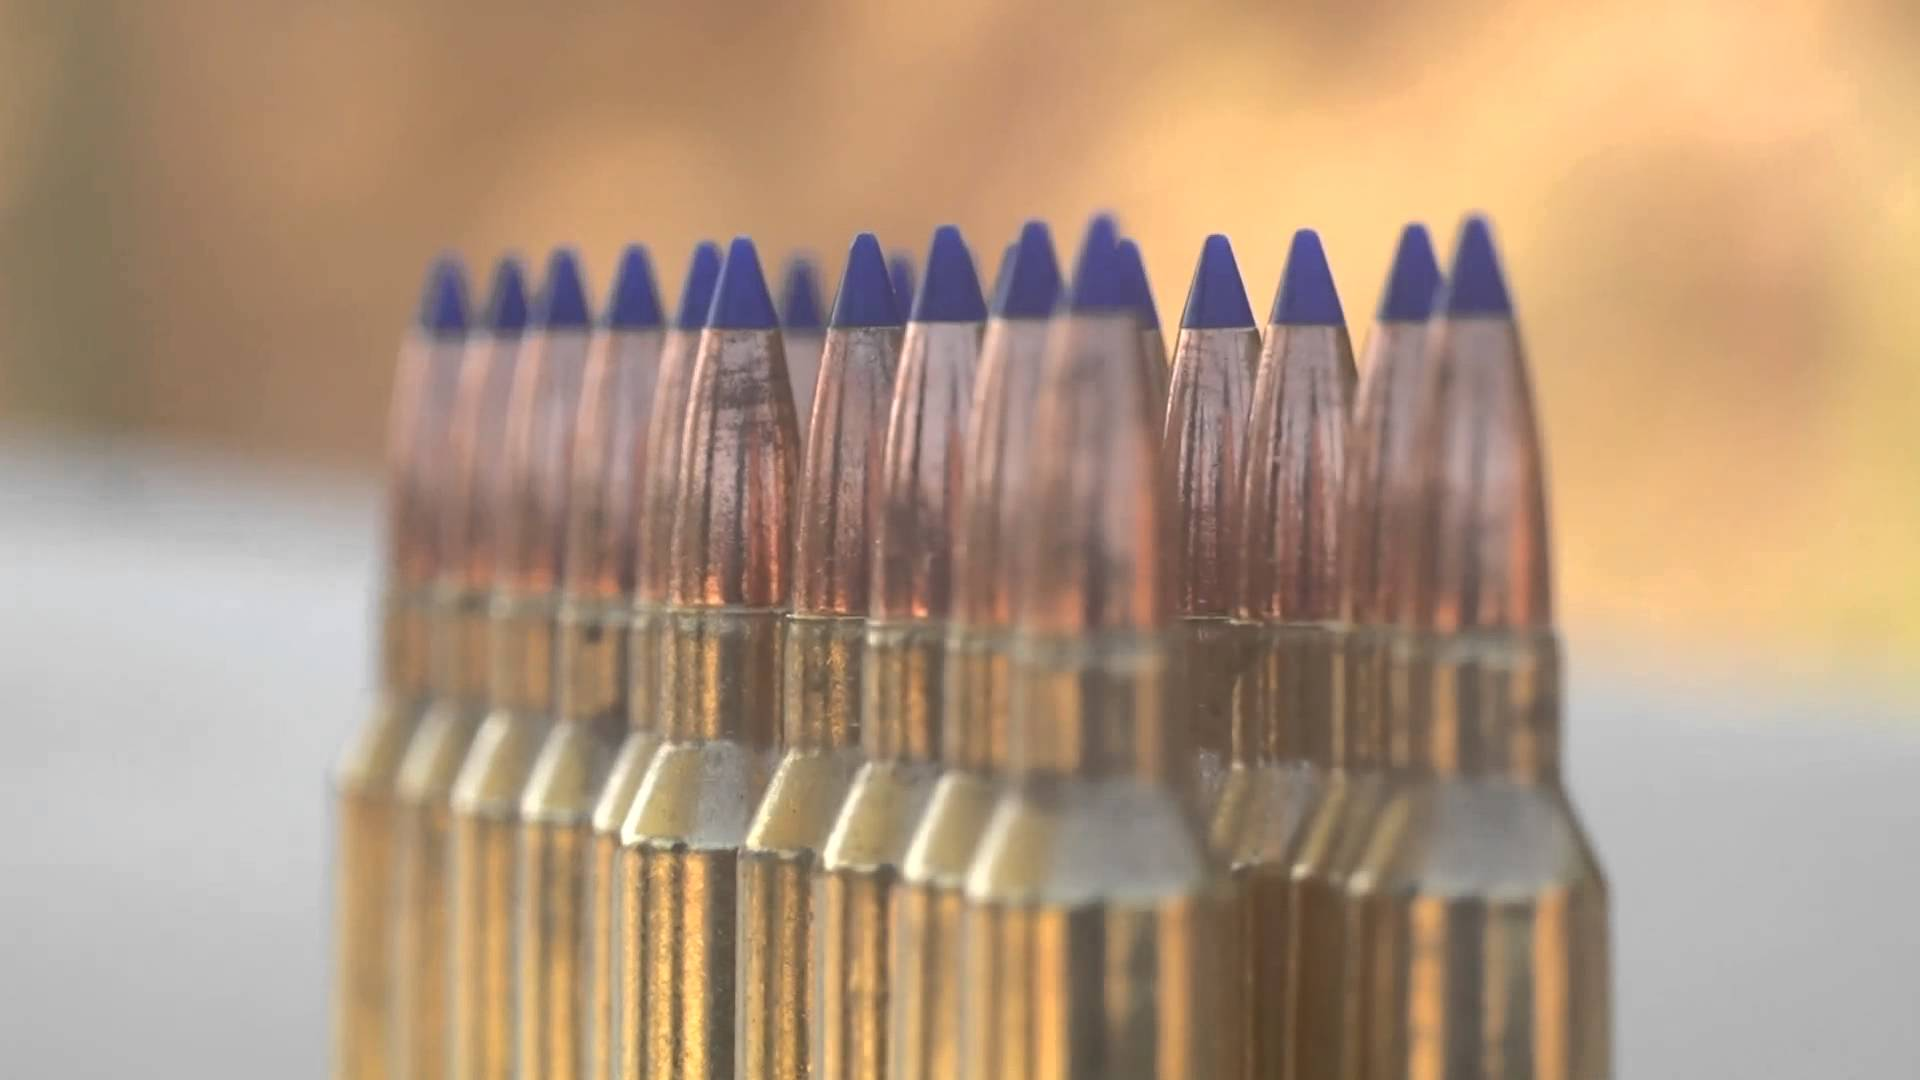 7mm Rem Mag Ammo Cartridge Review